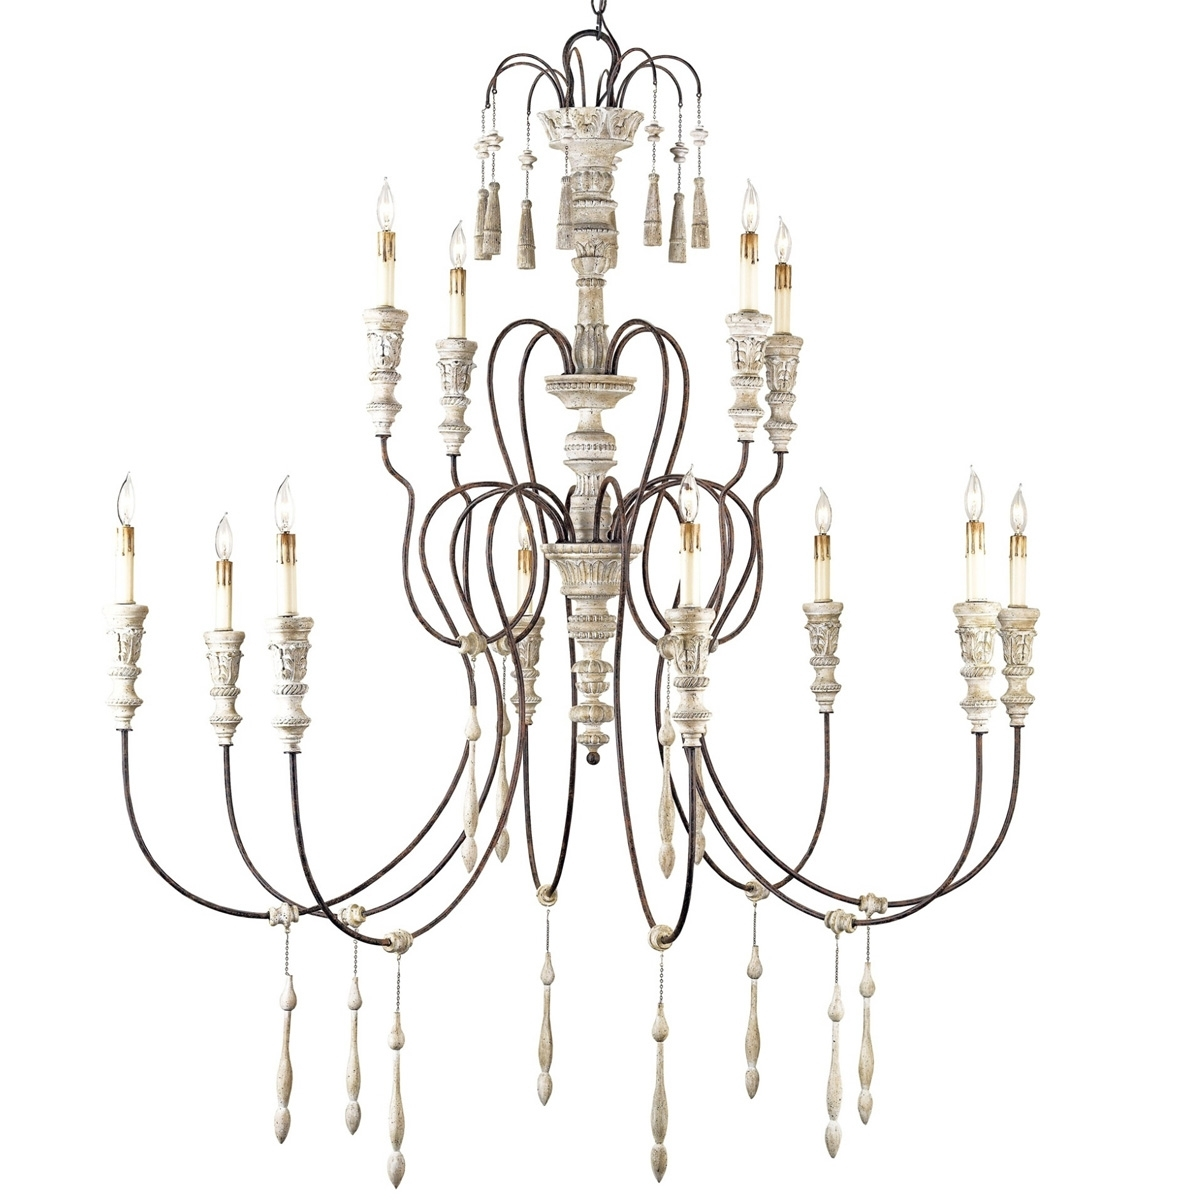 Shabby Chic Chandeliers – Chandelier Designs Within Fashionable Country Chic Chandelier (View 14 of 15)